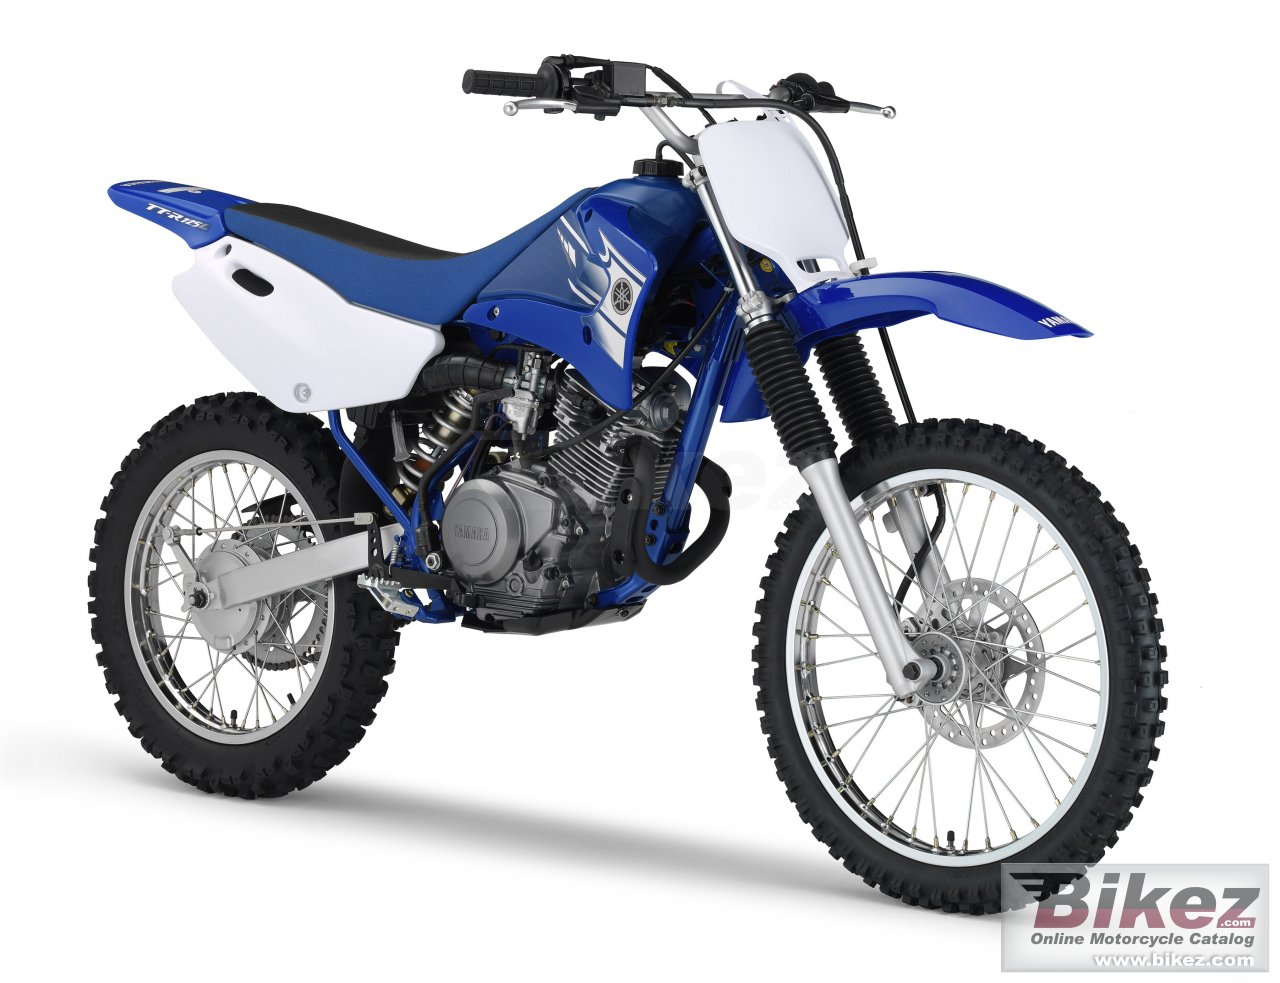 Big Yamaha tt-r 125 lw picture and wallpaper from Bikez.com